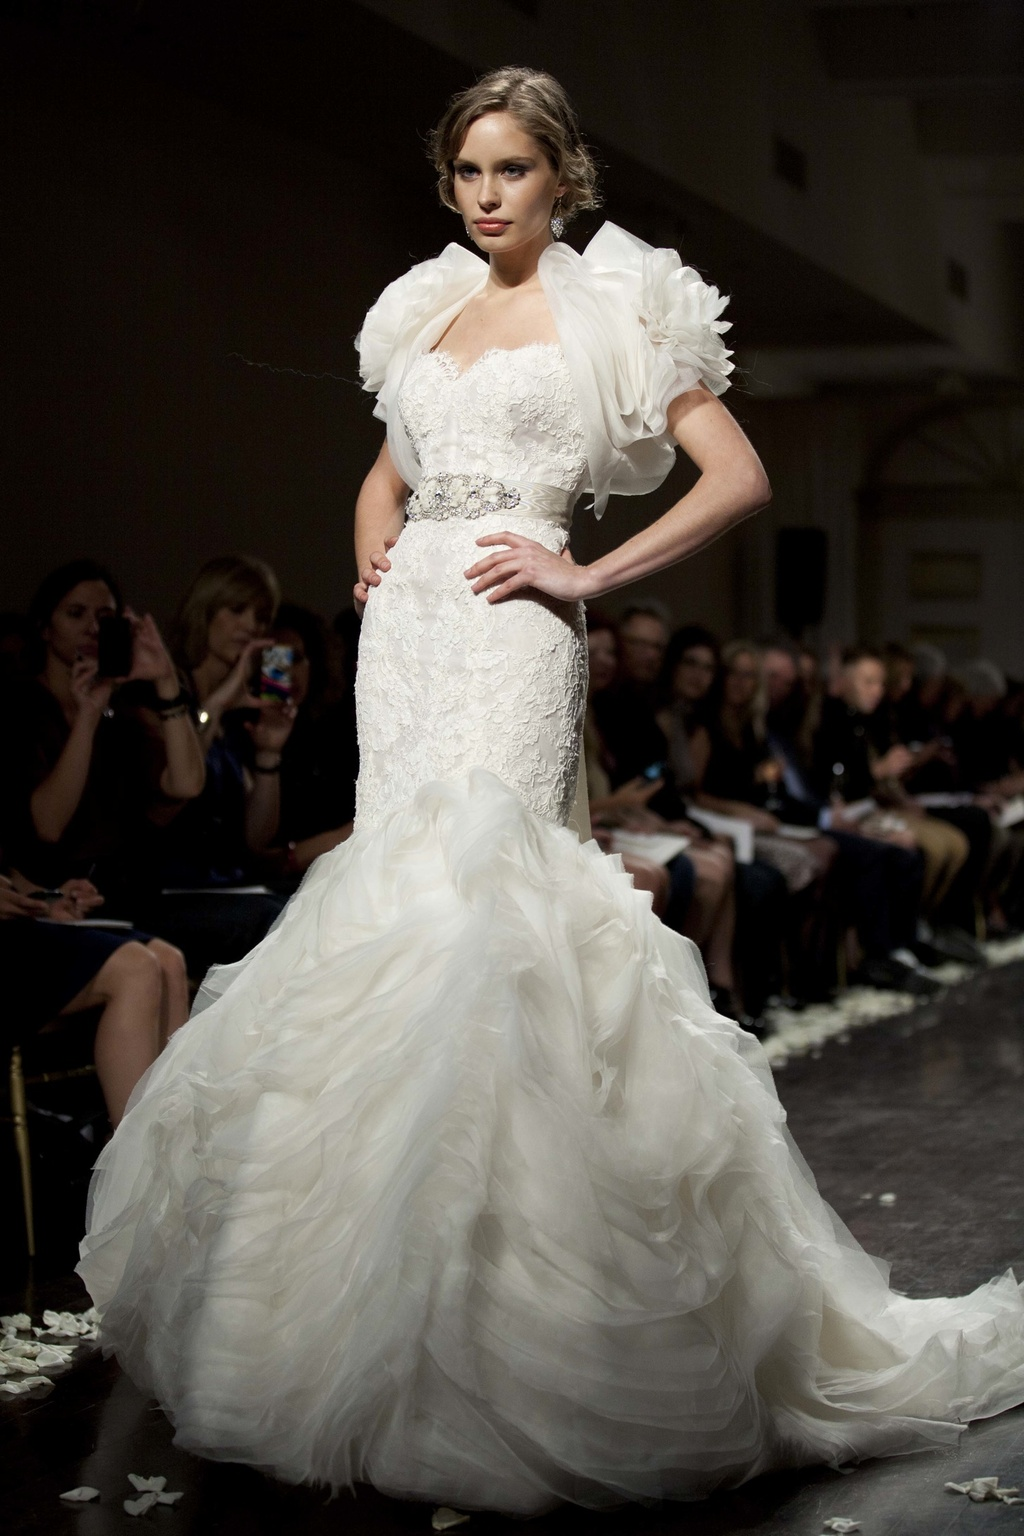 Wedding-dress-lazaro-fall-2012-bridal-gowns-dramatic-mermaid-layered-bolero.full